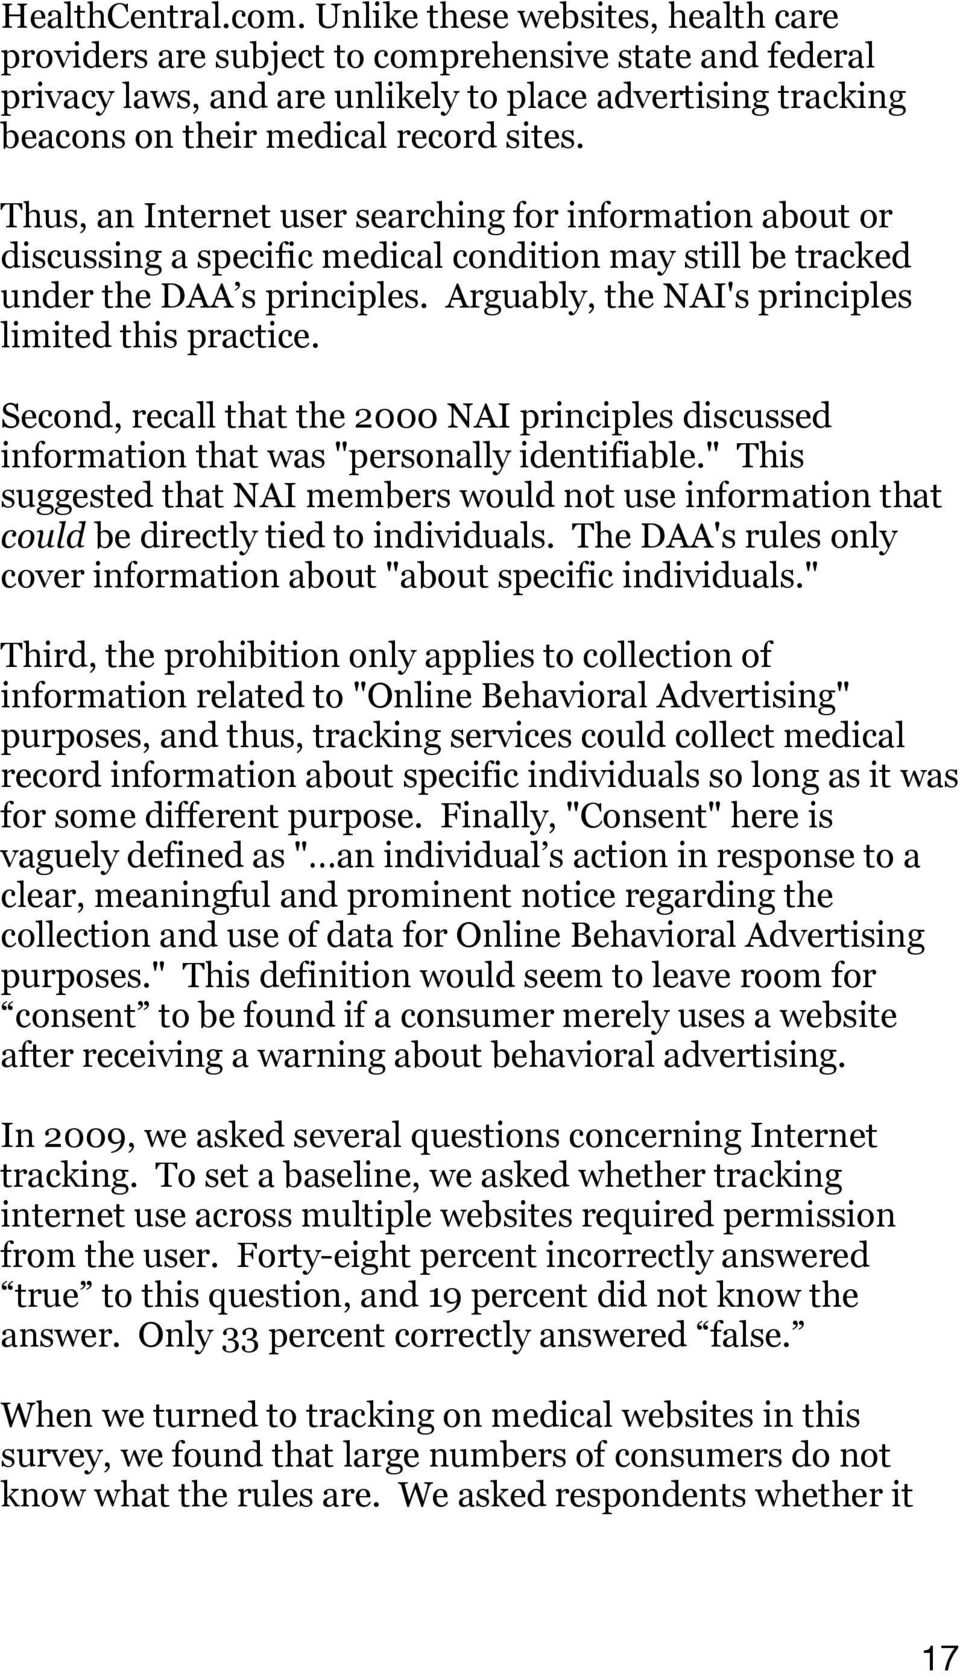 Thus, an Internet user searching for information about or discussing a specific medical condition may still be tracked under the DAA s principles. Arguably, the NAI's principles limited this practice.